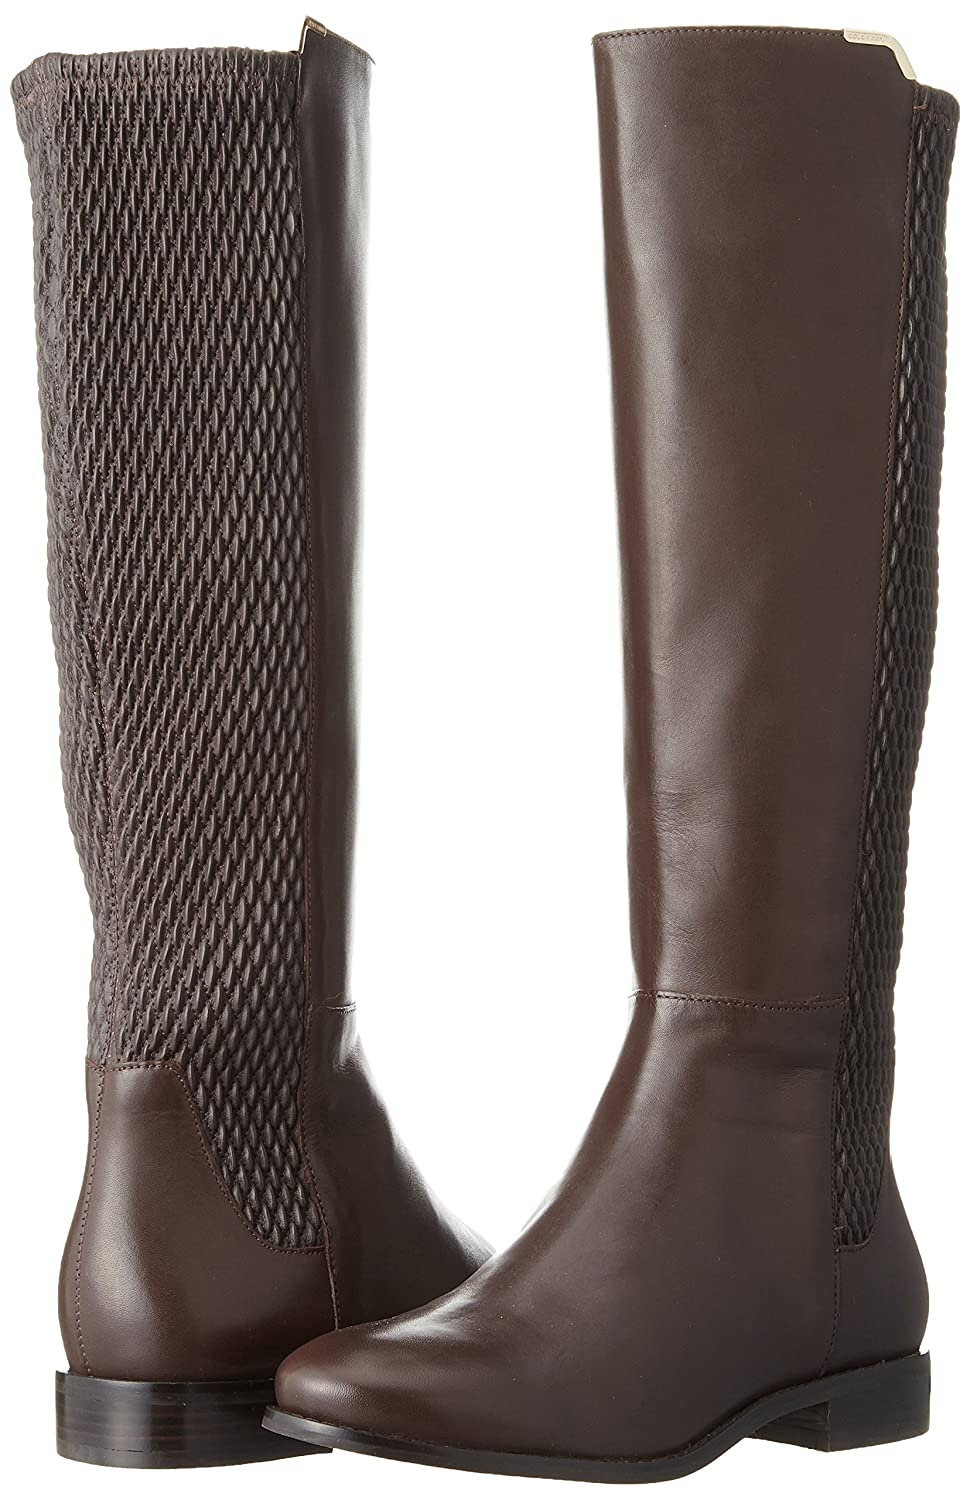 Cole Haan Women's Rockland Riding Boot B00TE9RXNK 8.5 B(M) US|Chestnut Leather